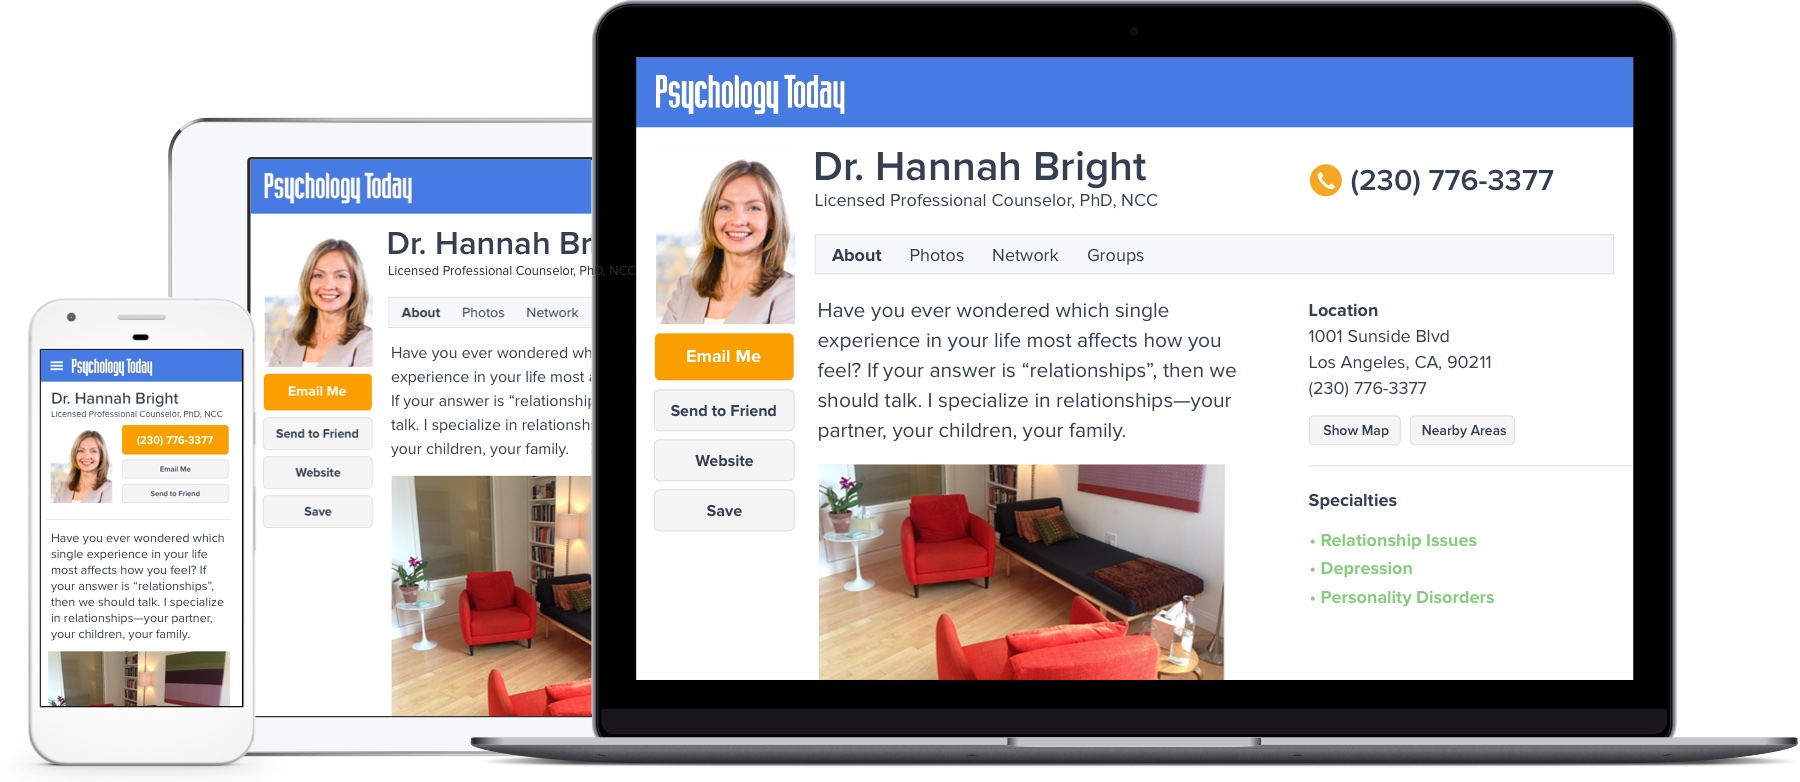 Therapy Directory examples of listings on mobile, tablet, and laptop.